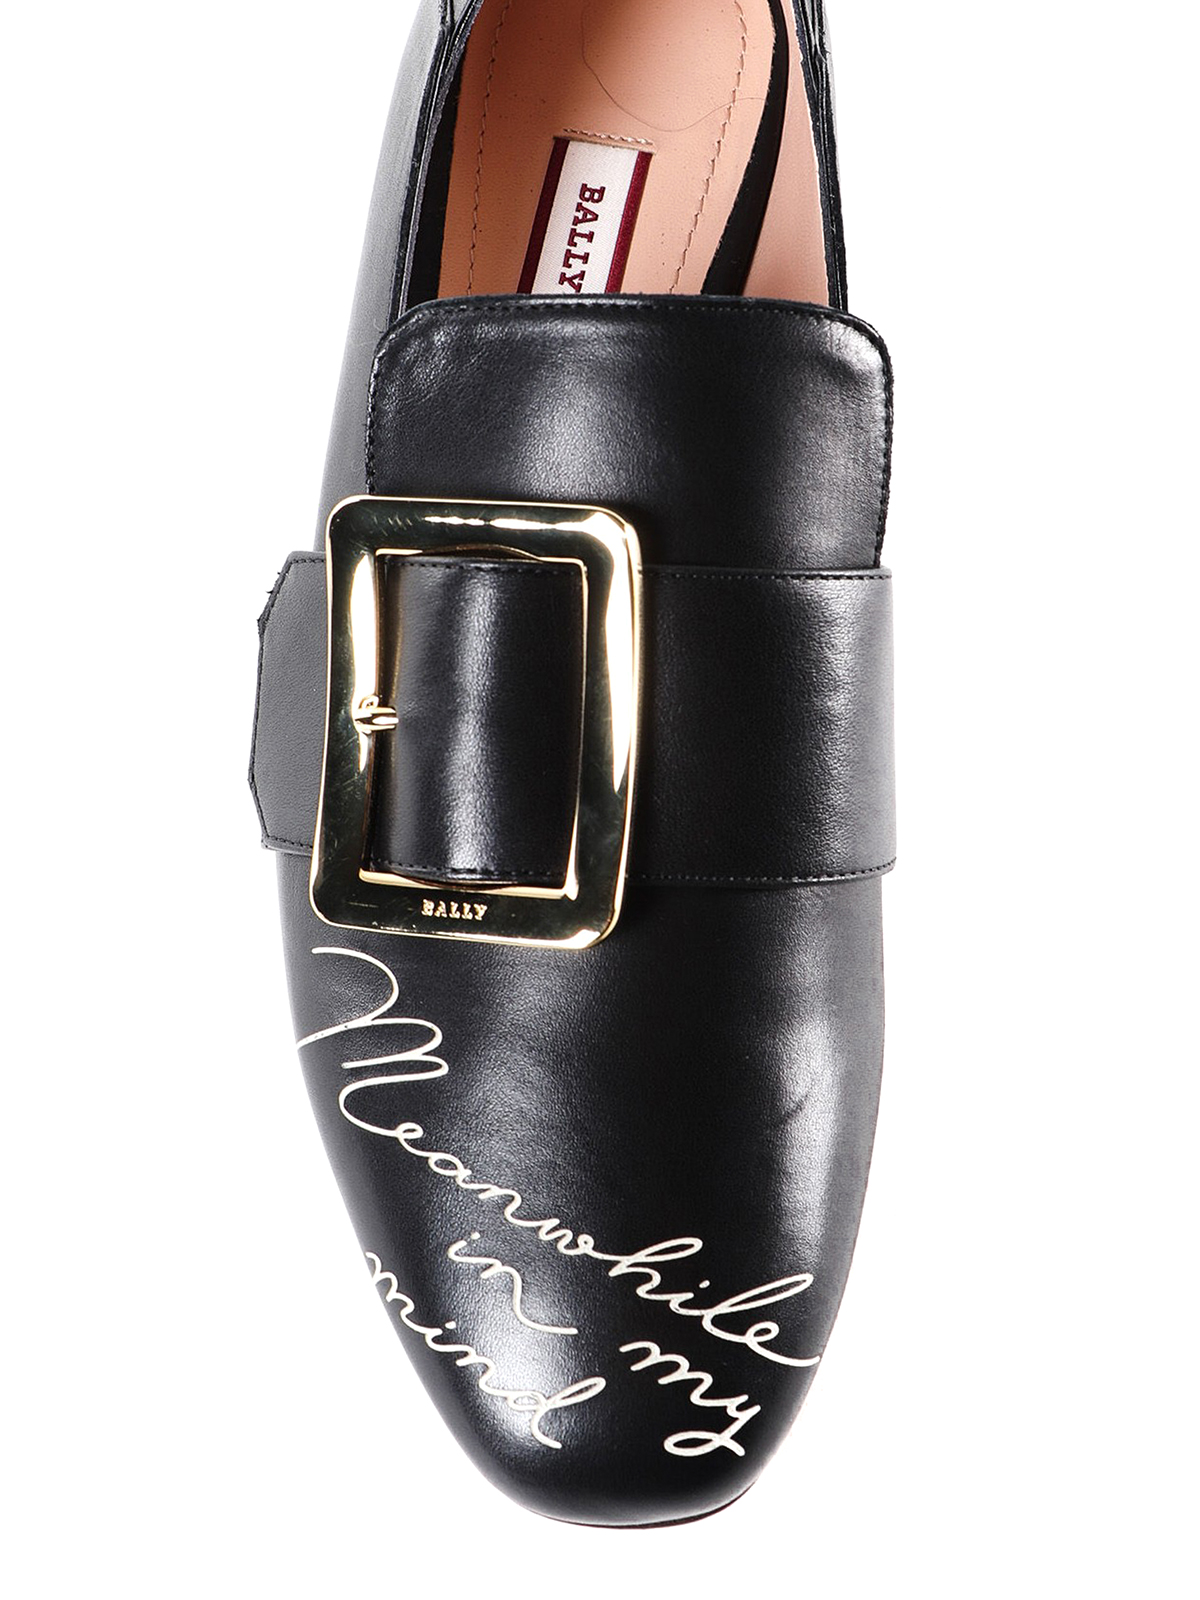 simpático Pies suaves Compra  Bally - Janelle black leather written shoes - Loafers & Slippers - 622589700